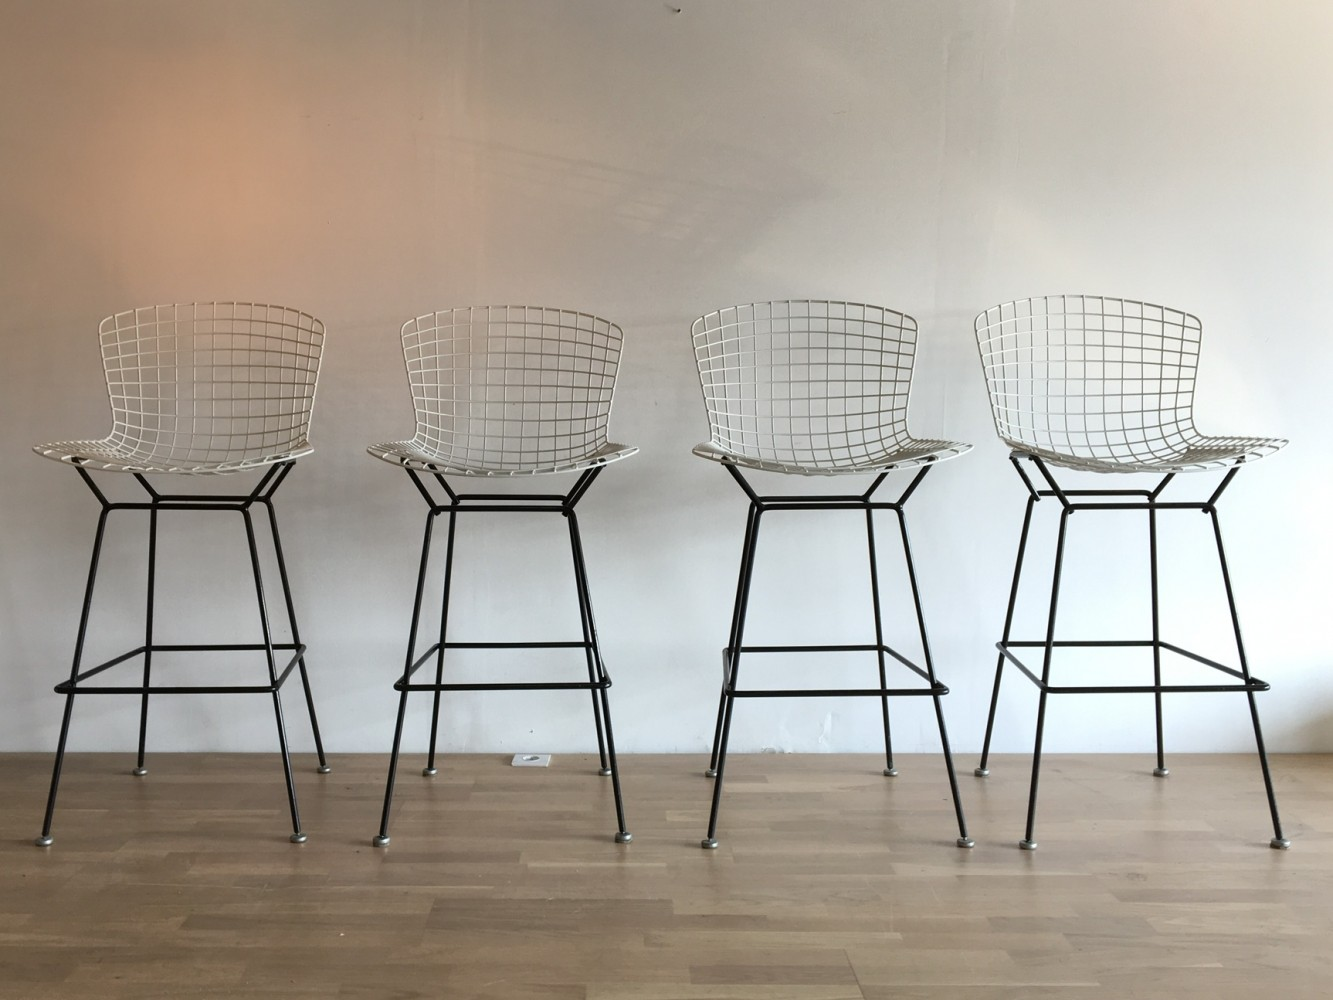 4 Tabouret Stools From The Fifties By Harry Bertoia For Knoll 60097